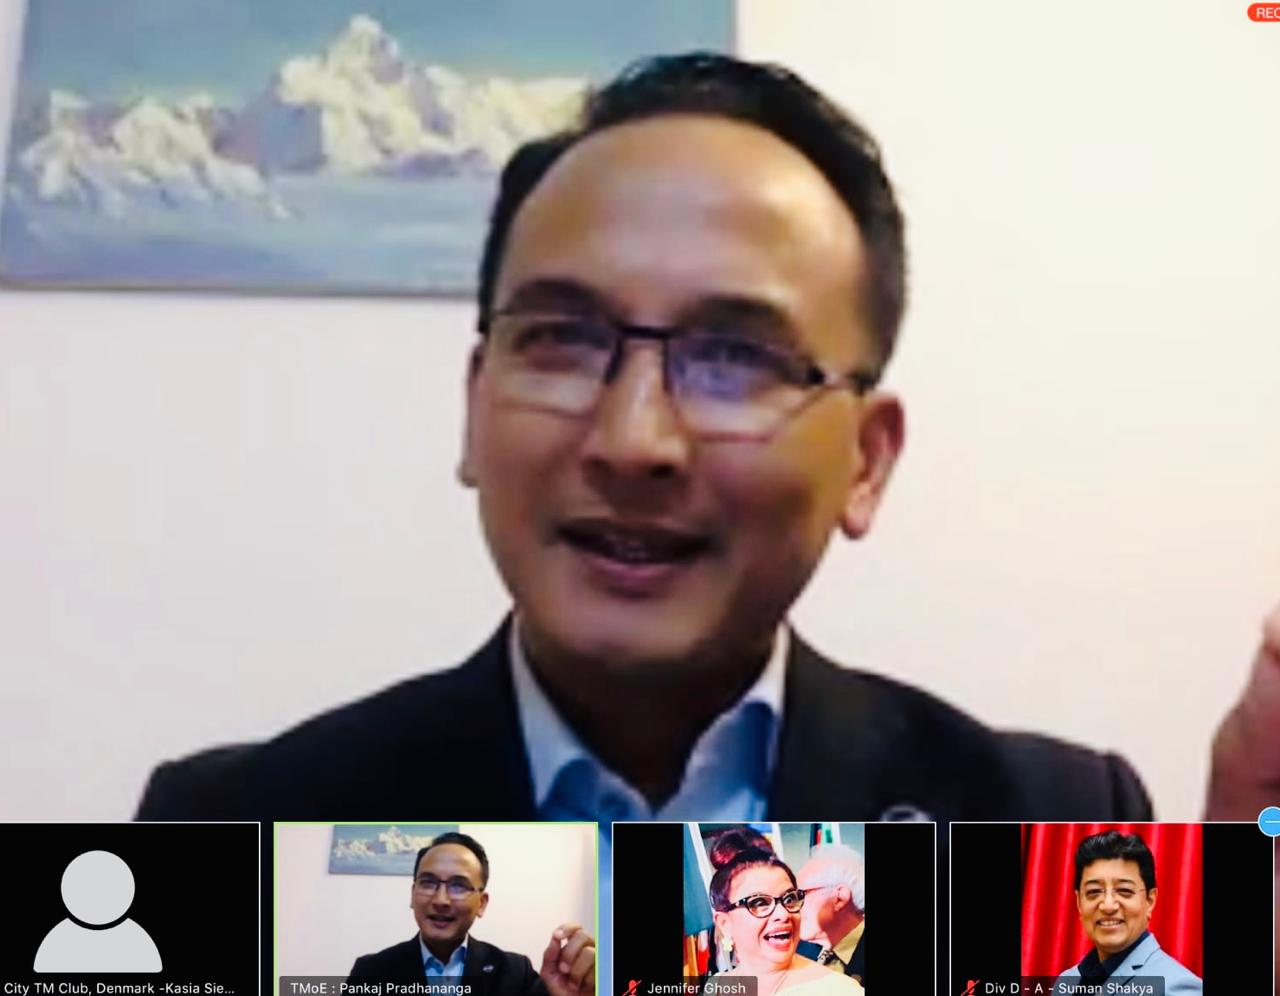 Nepal hosts a global meeting of Toastmasters during the lockdown